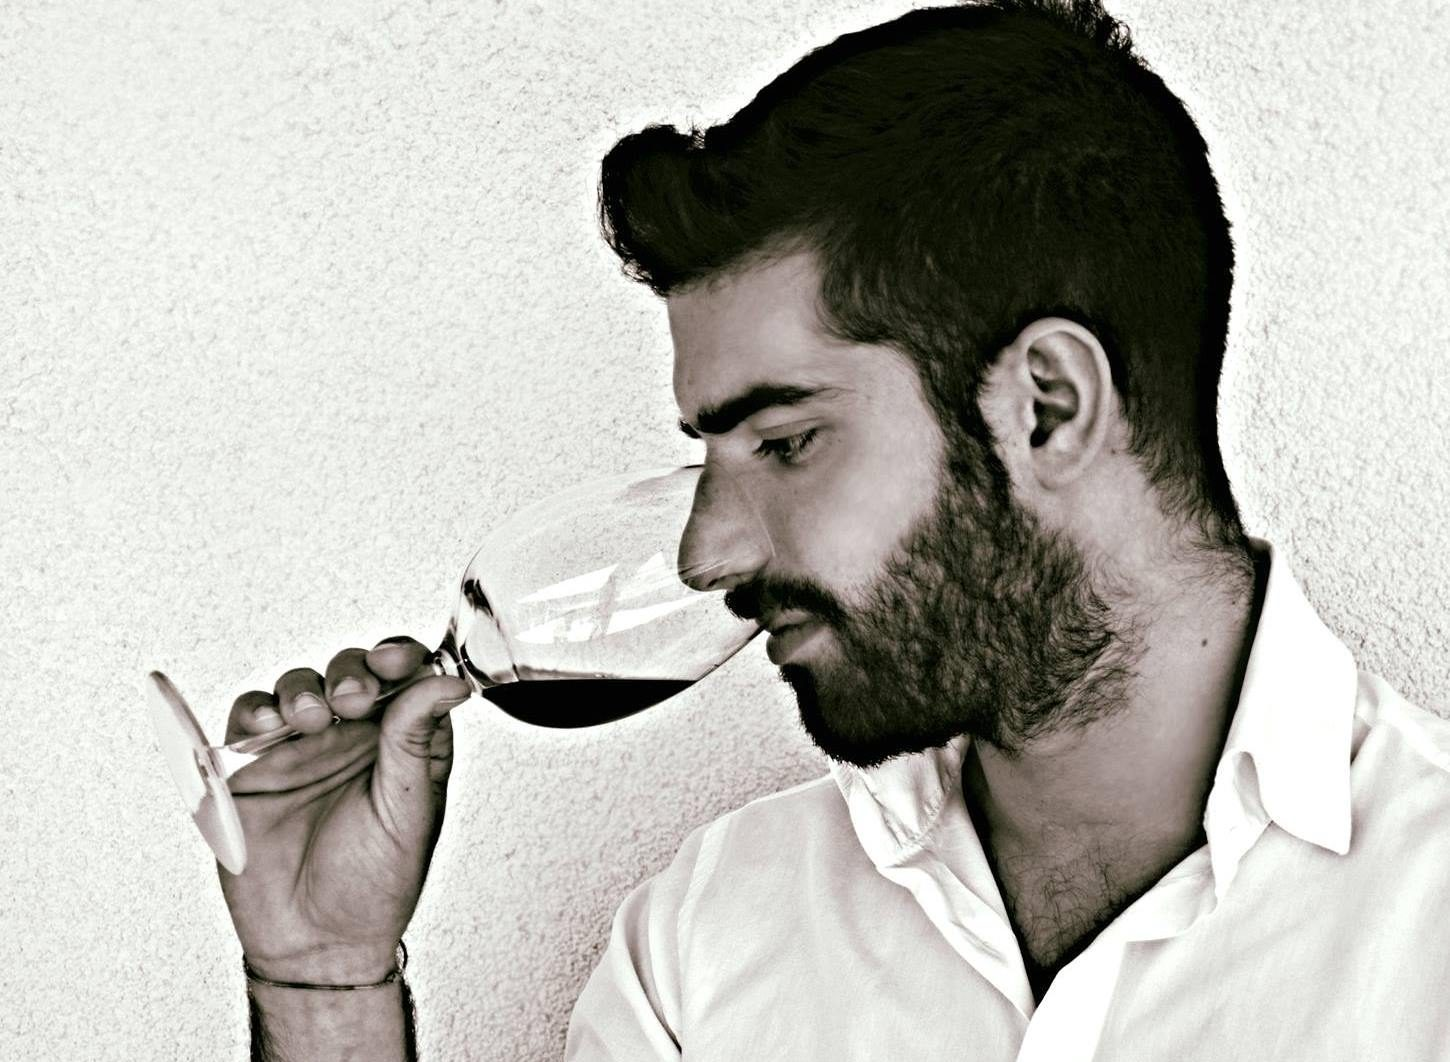 Antonio Carullo Sommelier e Influencer